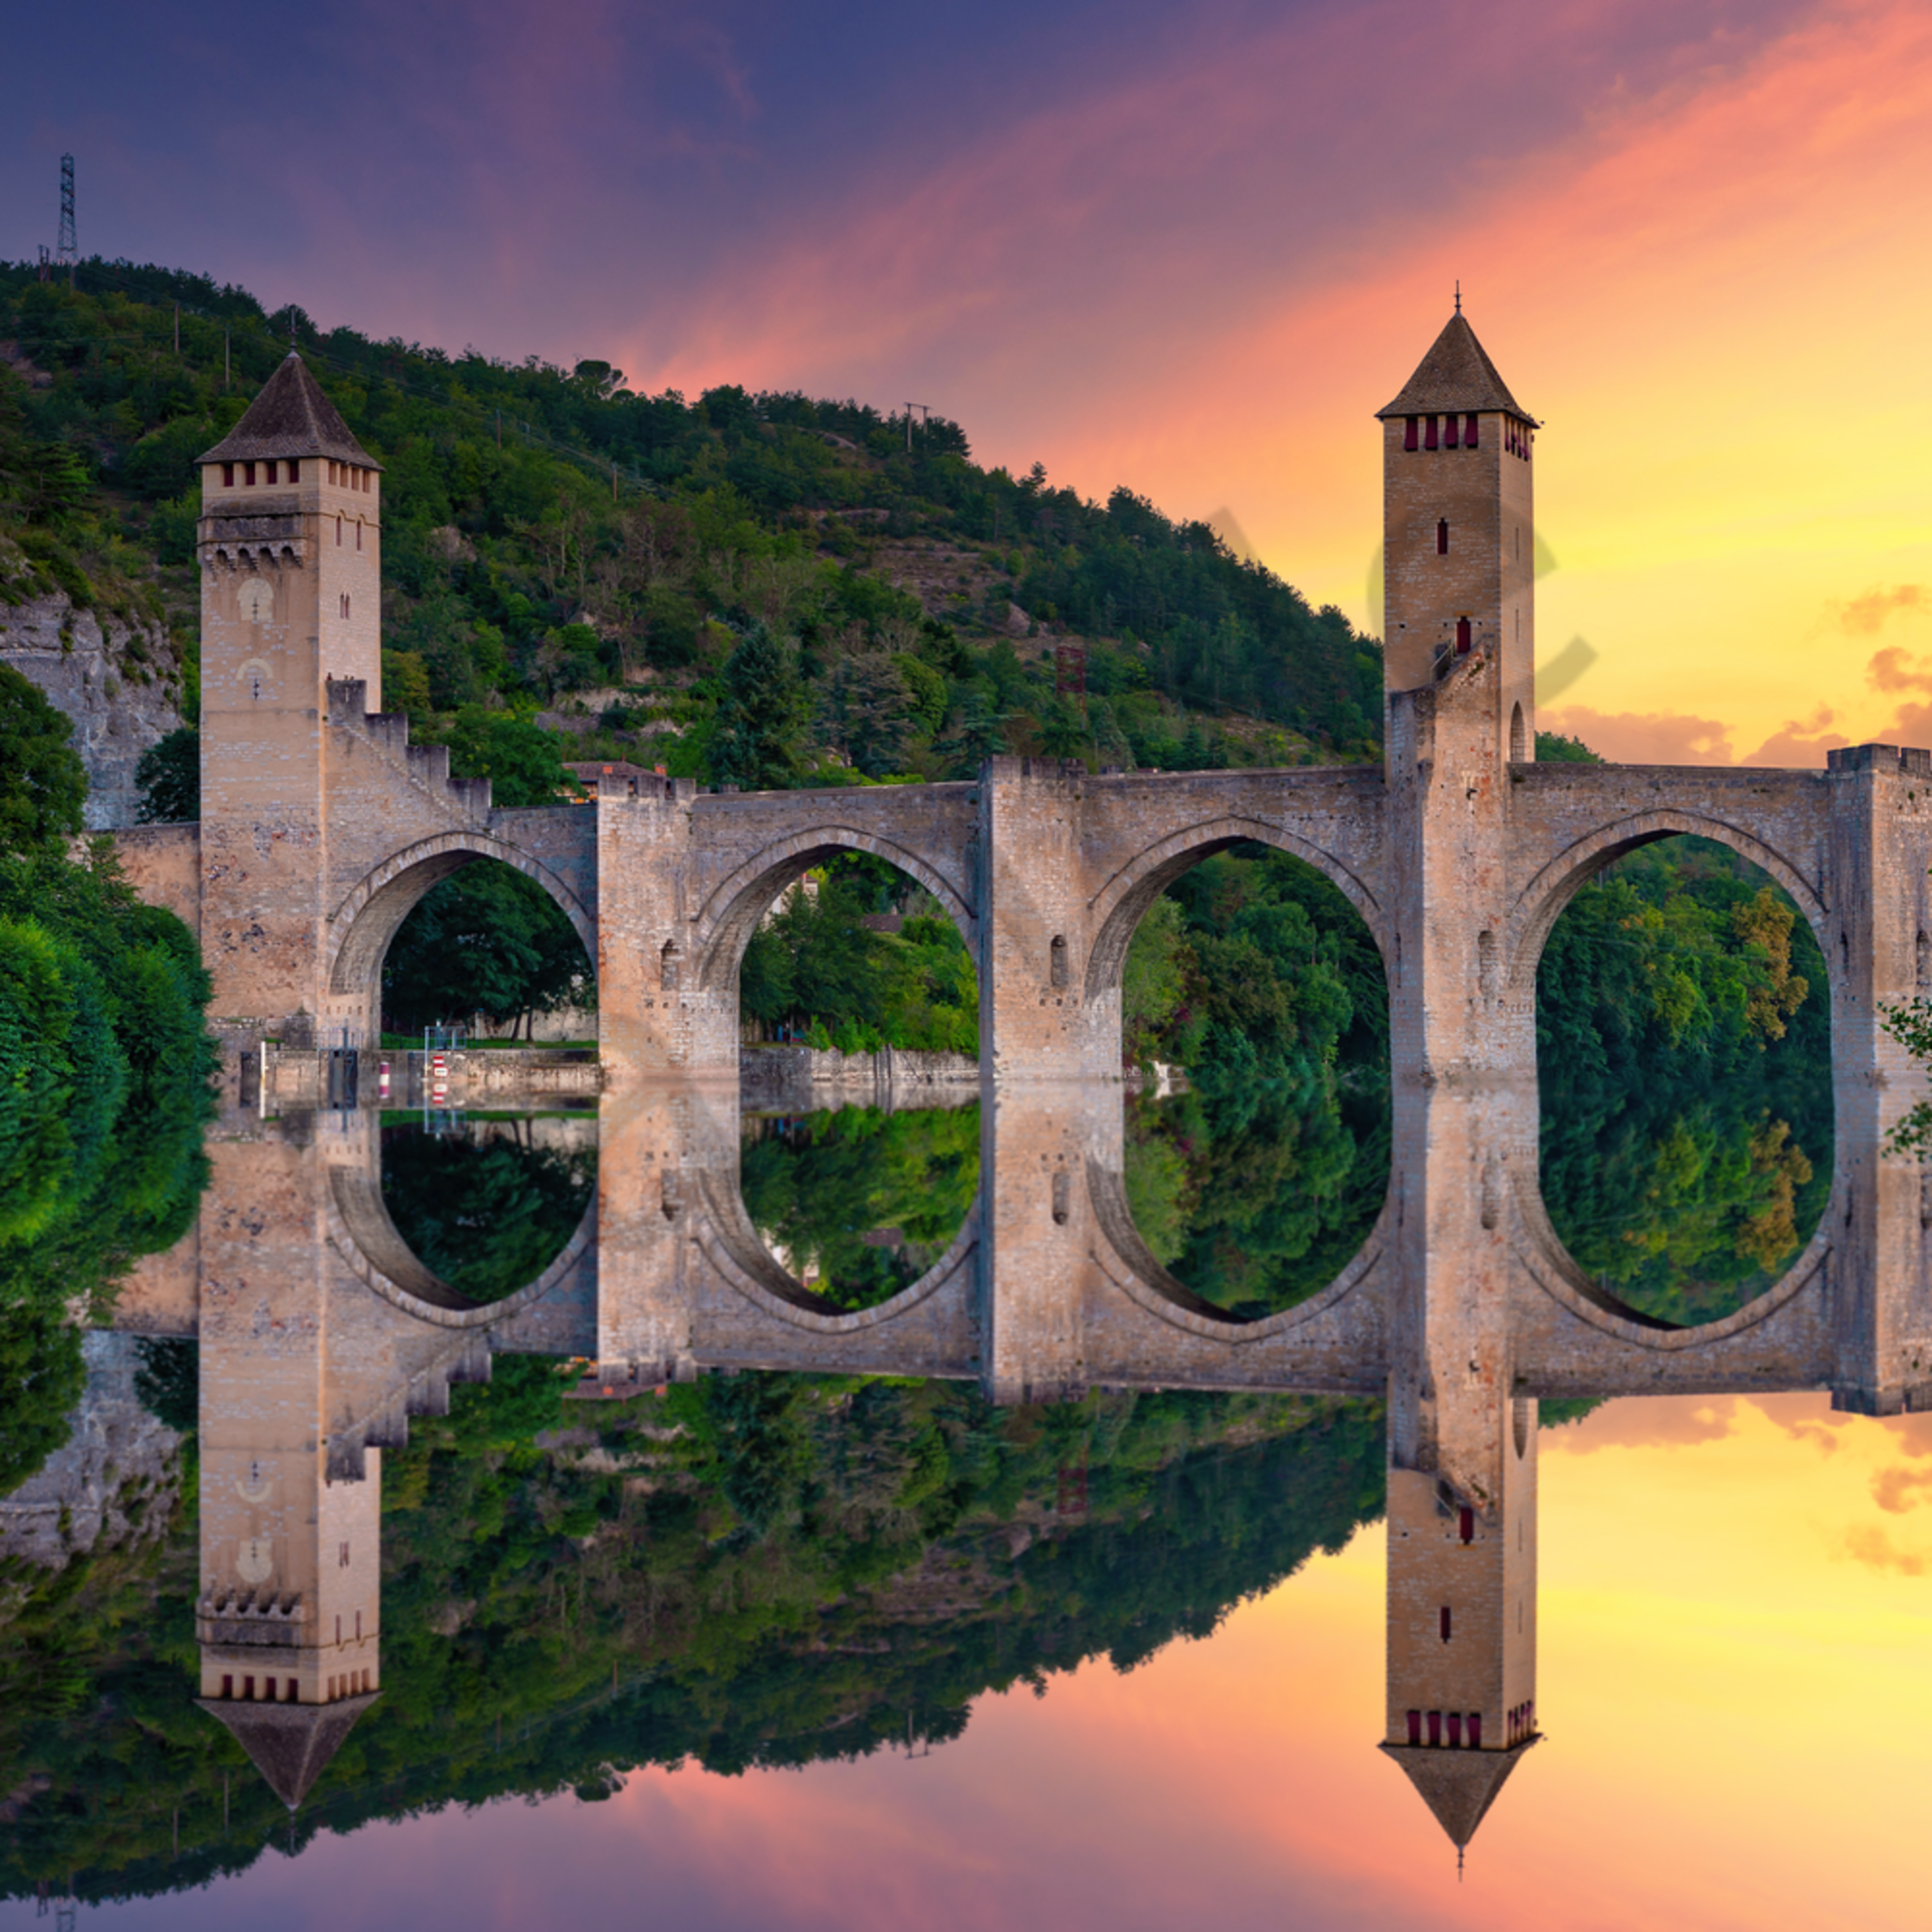 Sunset and reflection cahors france vdzukx